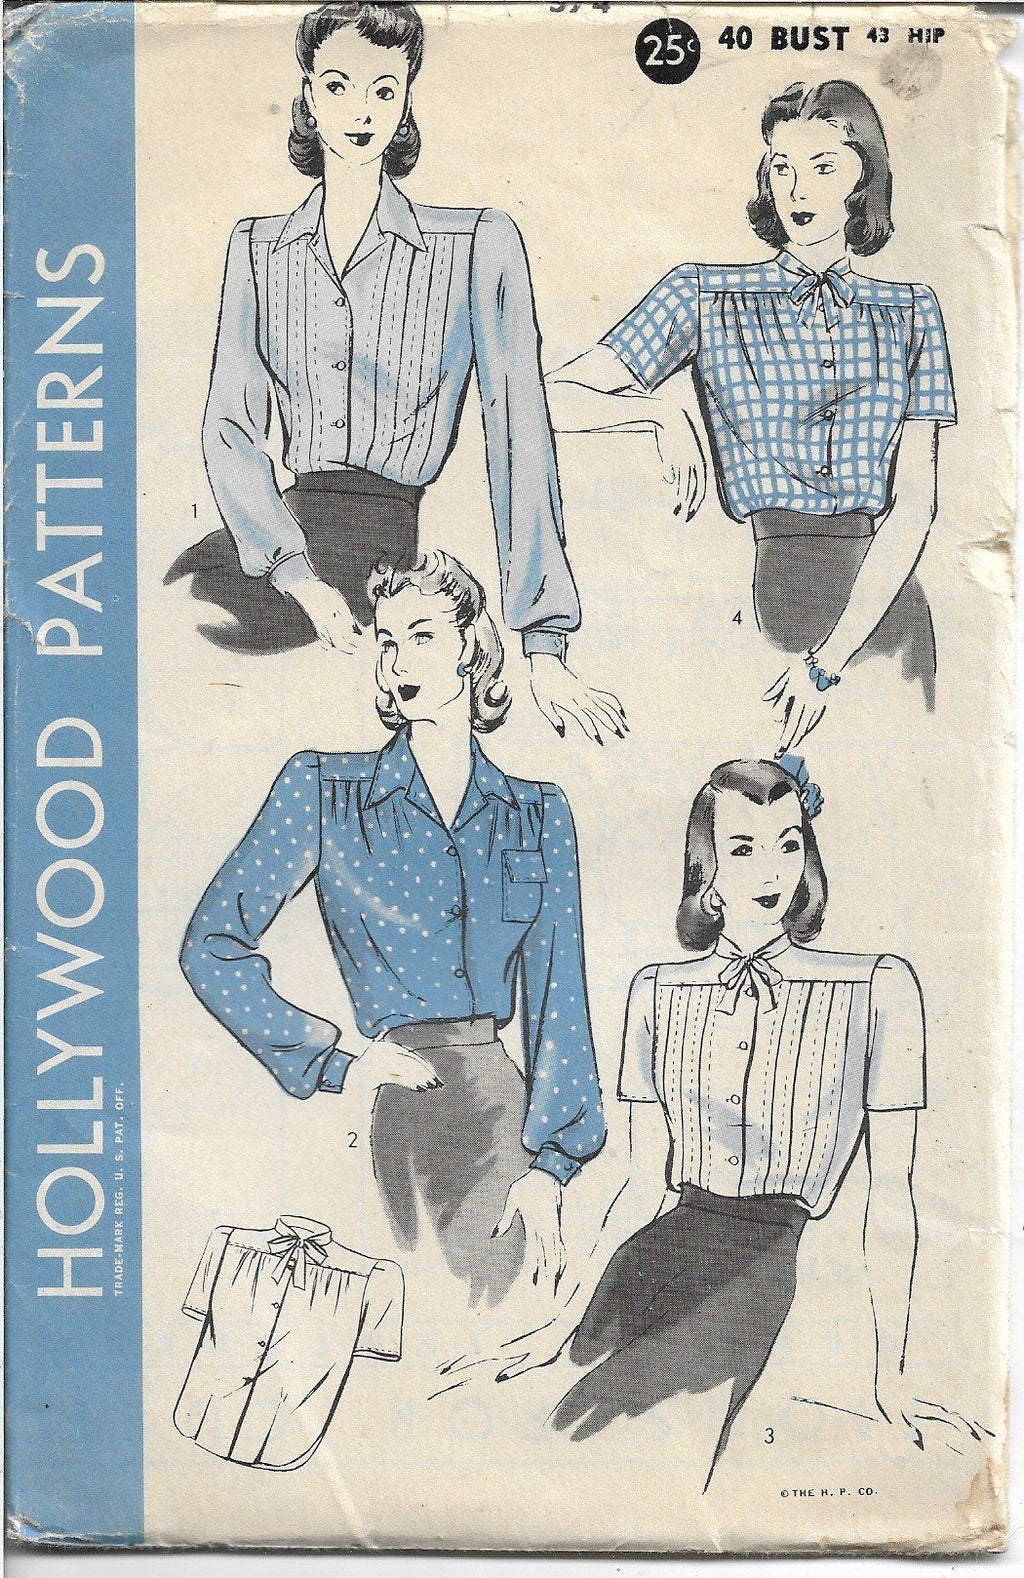 Hollywood 574 Ladies Blouse Vintage Sewing Pattern 1940s - VintageStitching - Vintage Sewing Patterns